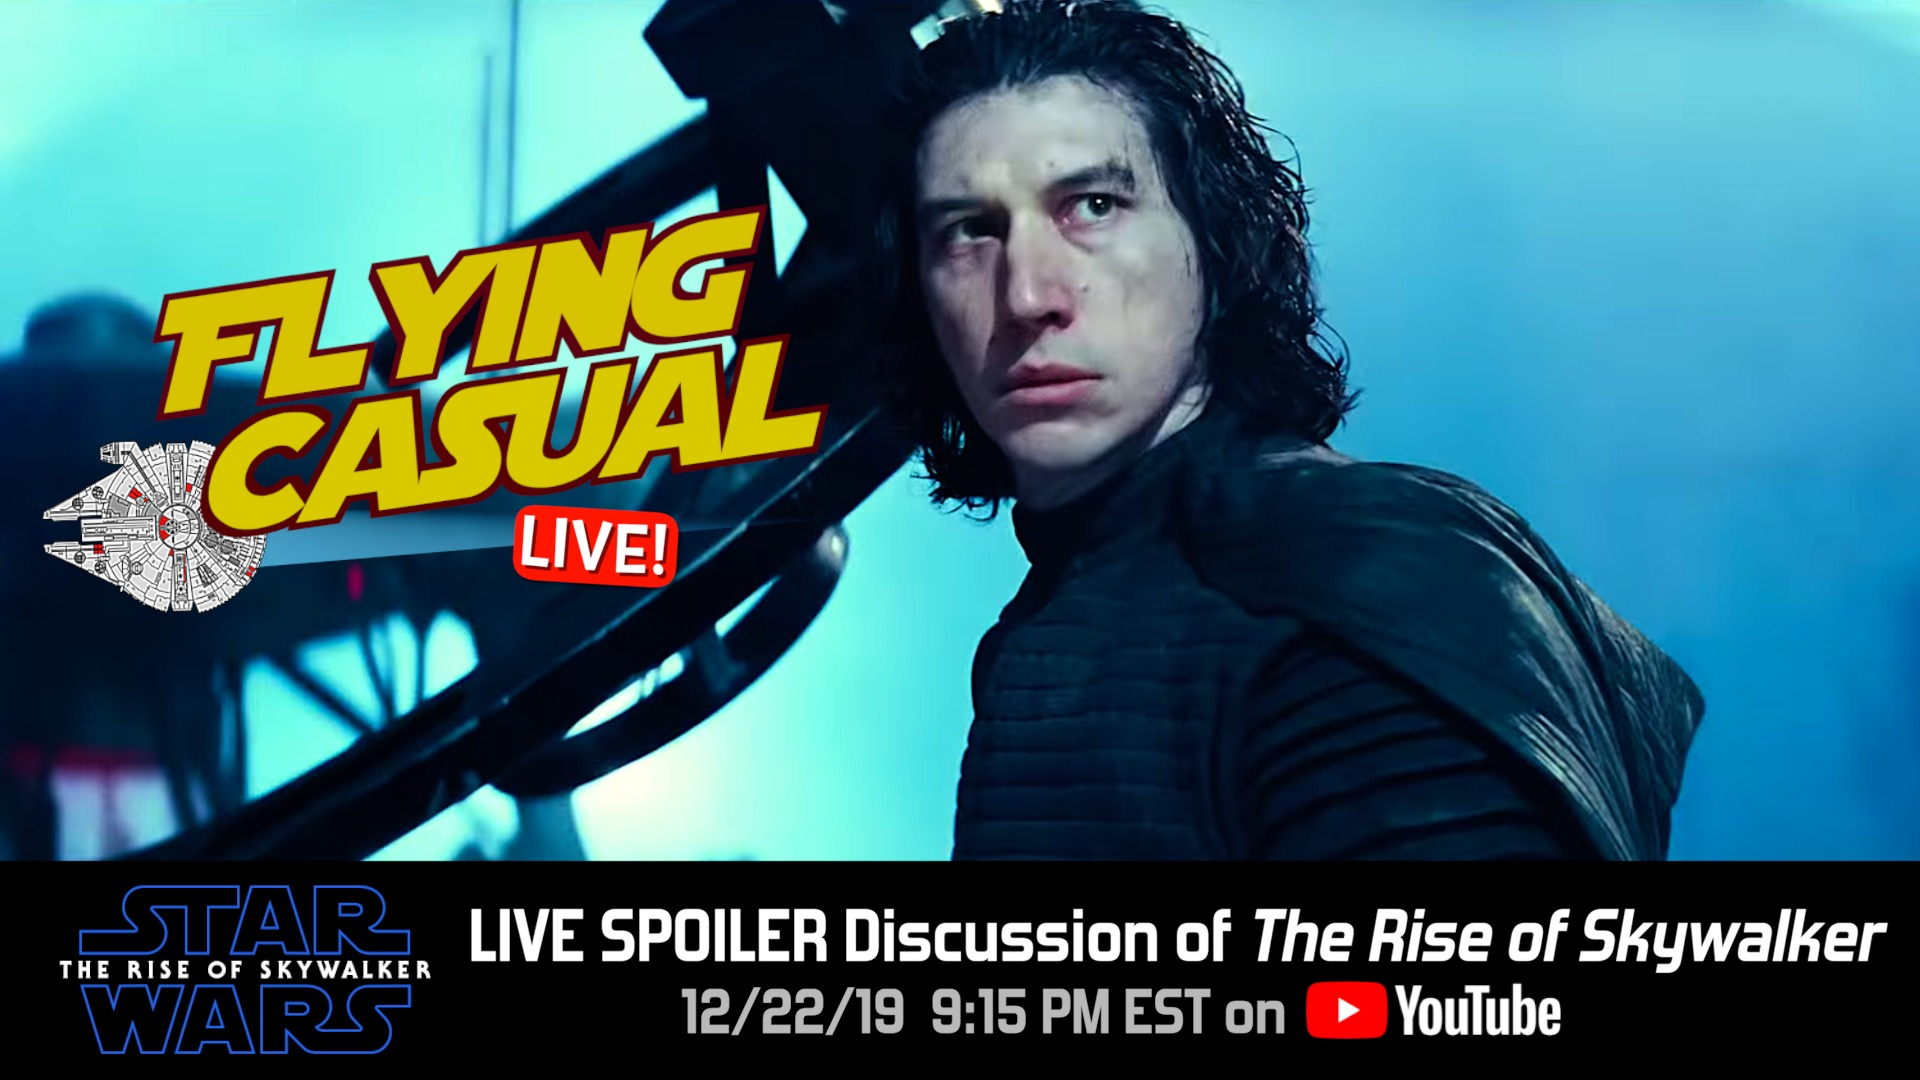 Ep 16 Live Spoiler Discussion Of Star Wars The Rise Of Skywalker